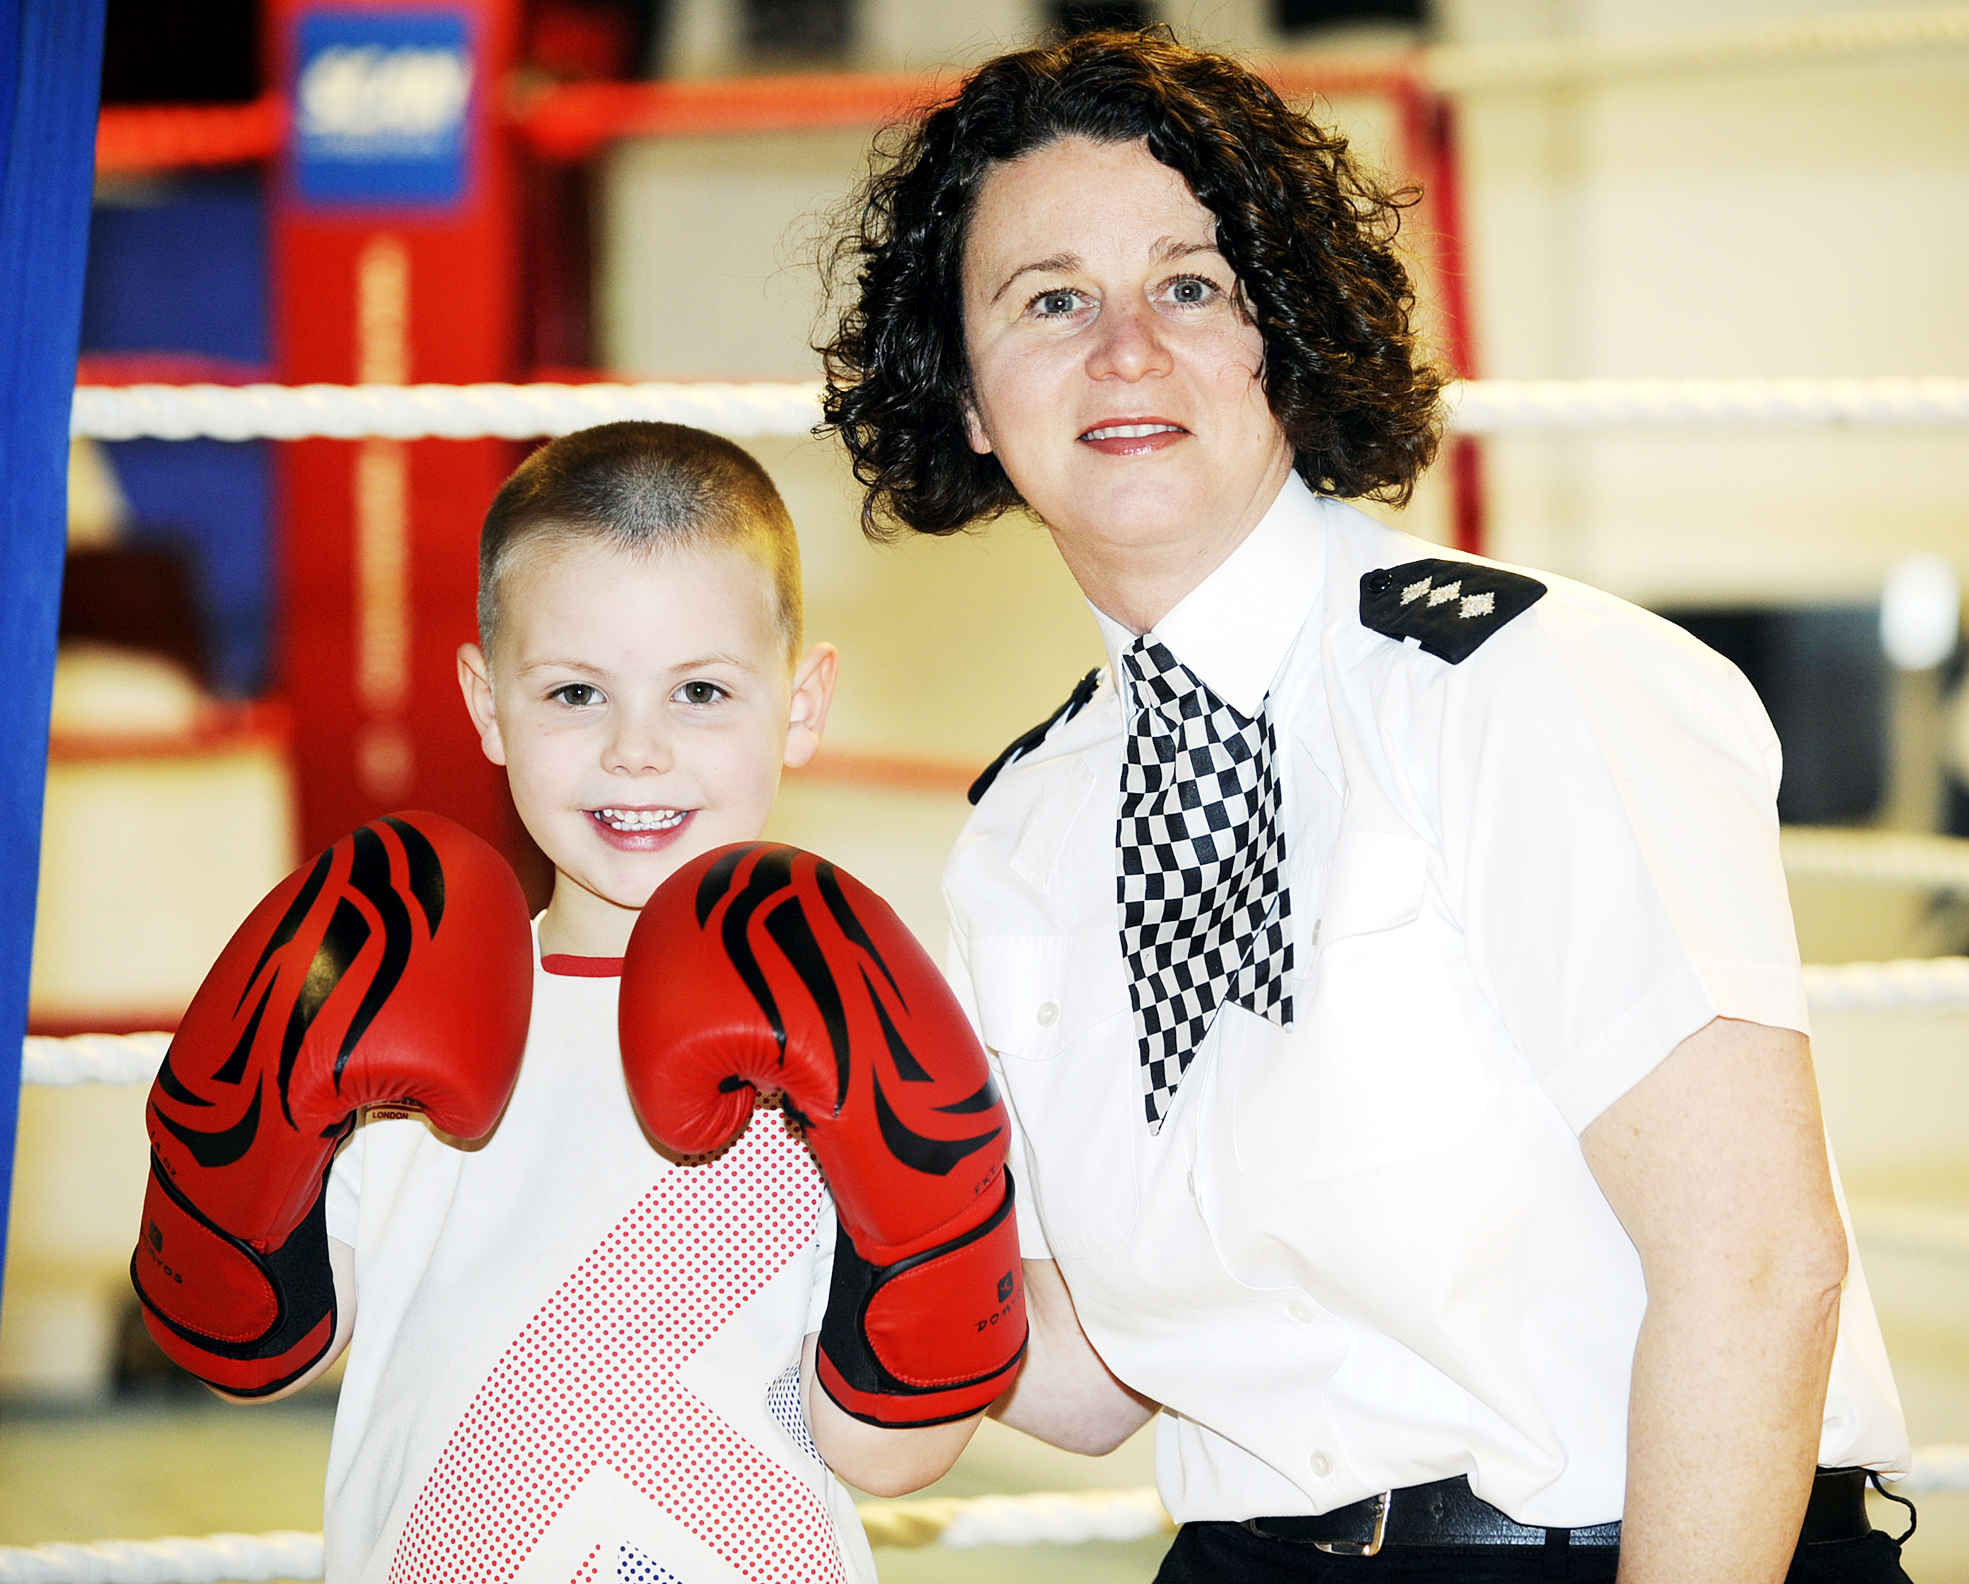 Children learn 'discipline' at police boxing club